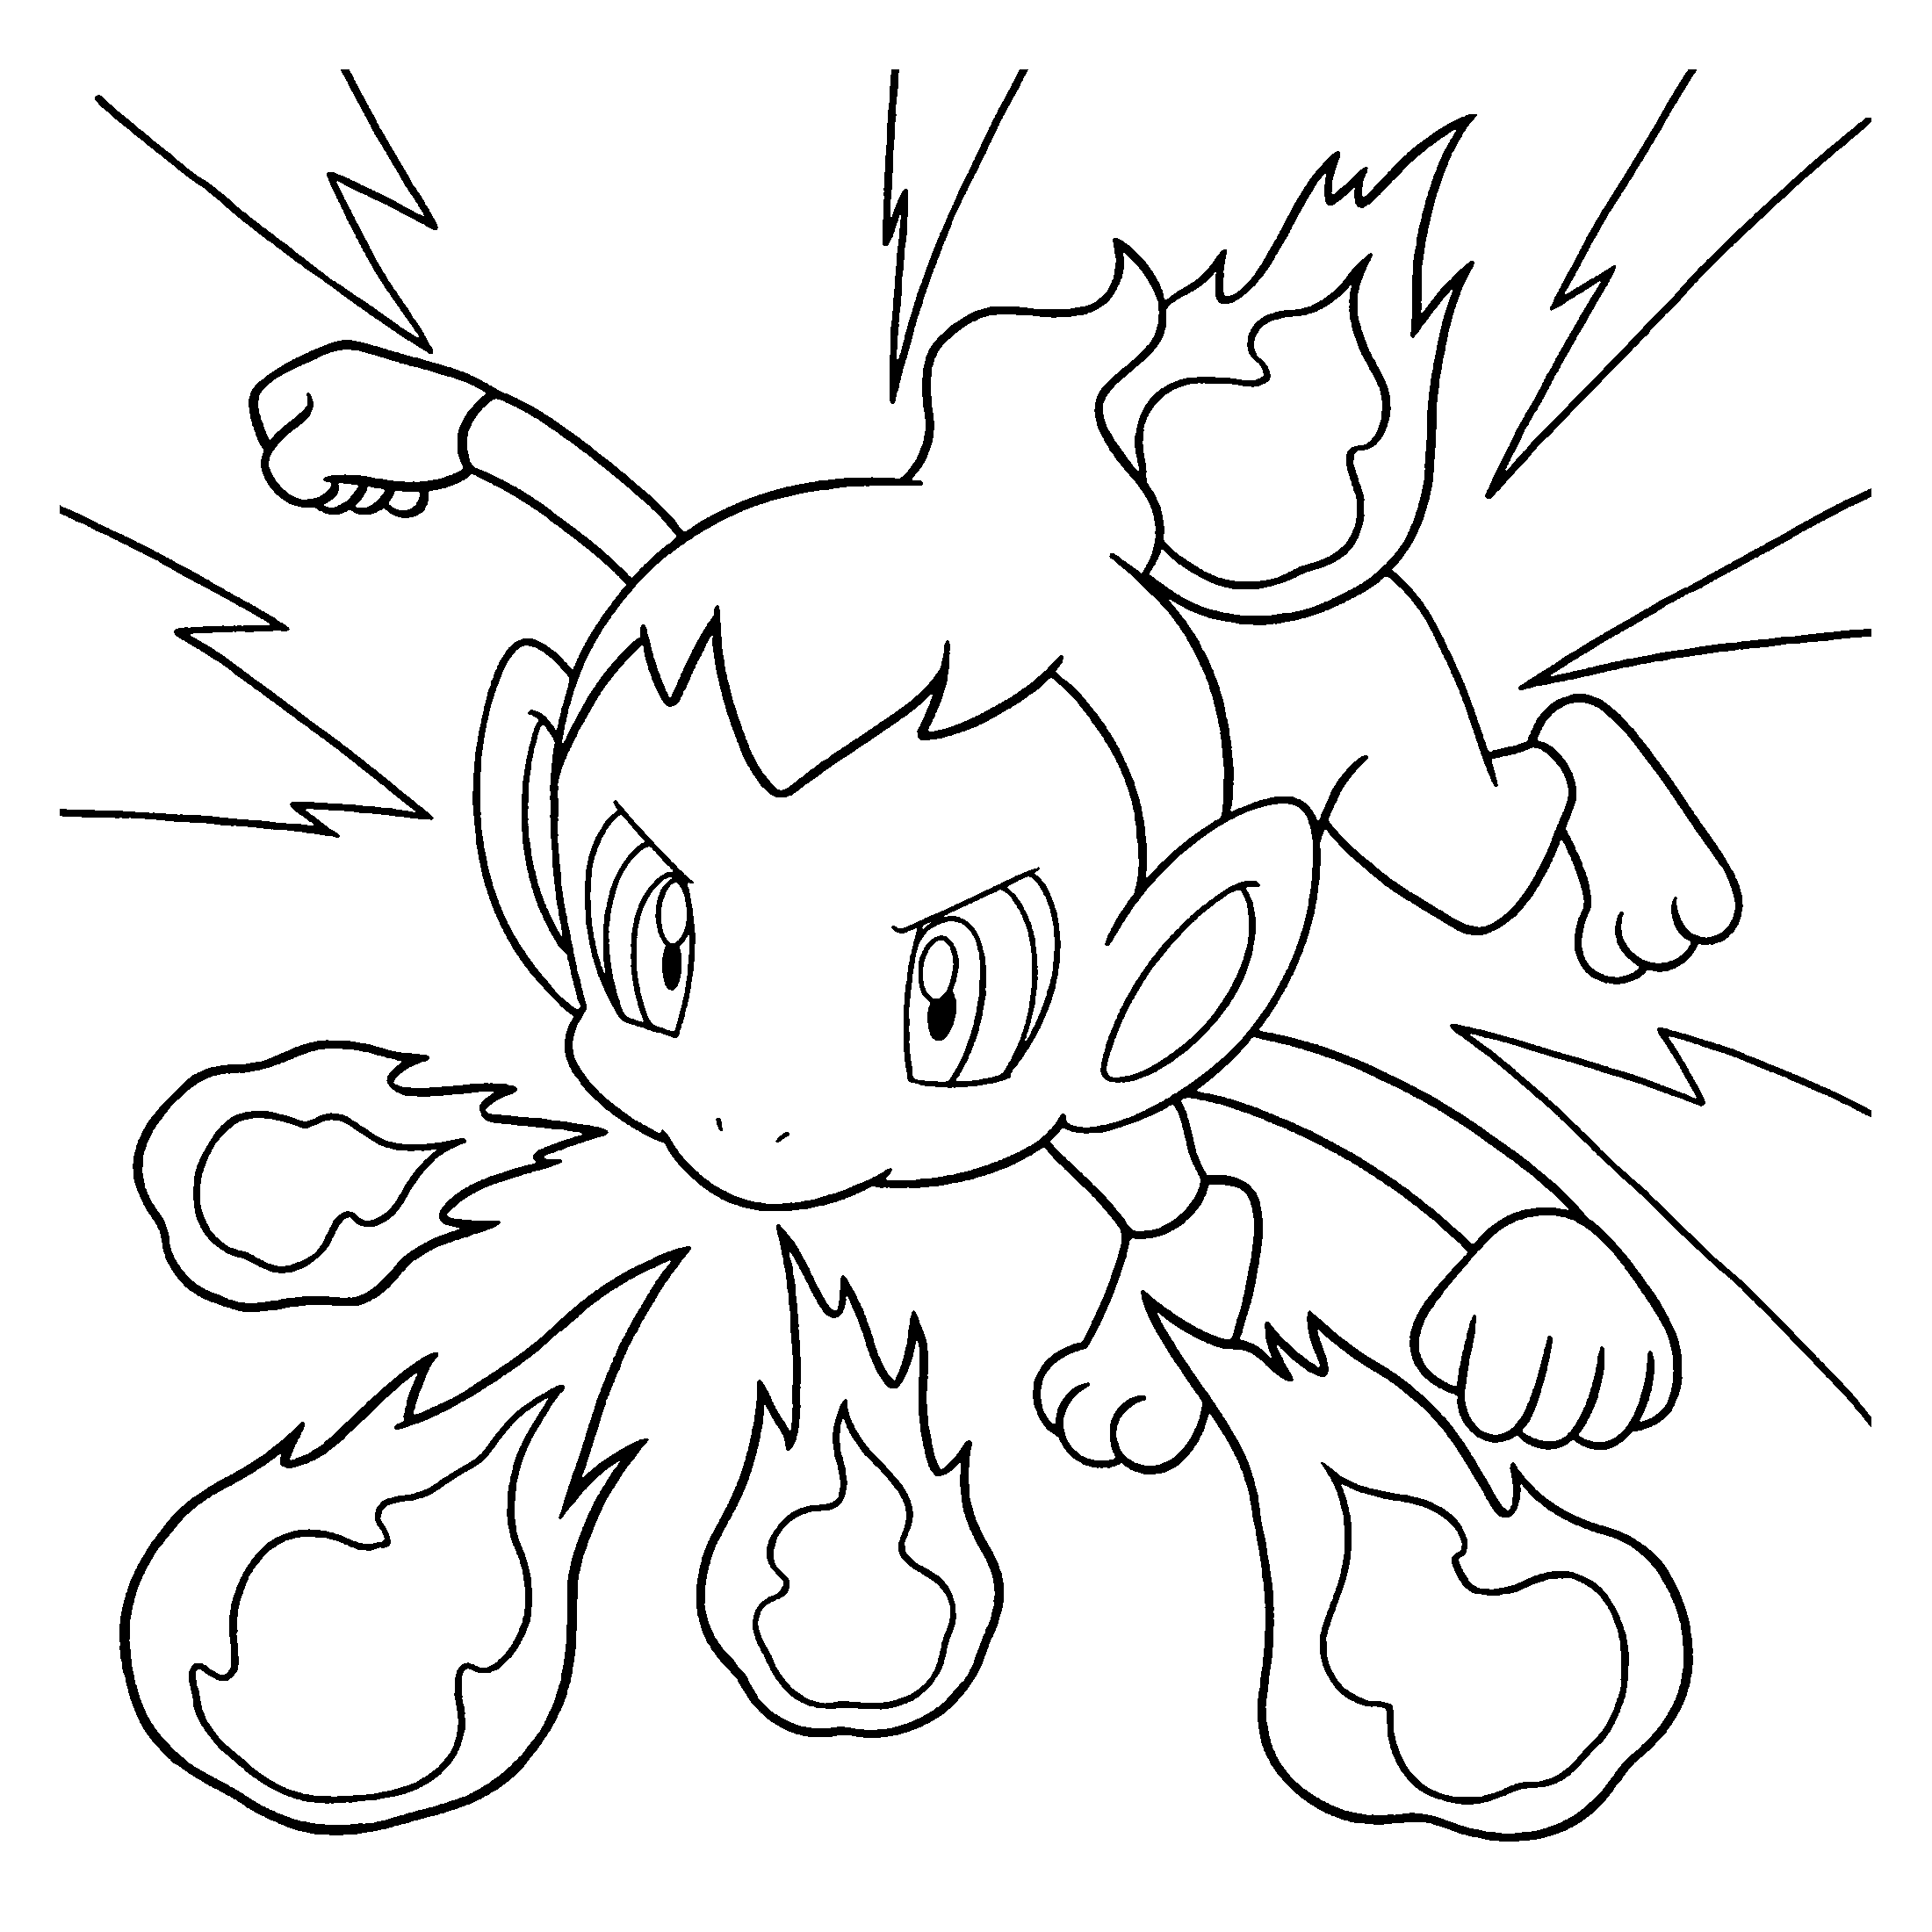 Fabulous Pokemon diamond pearl coloring pages